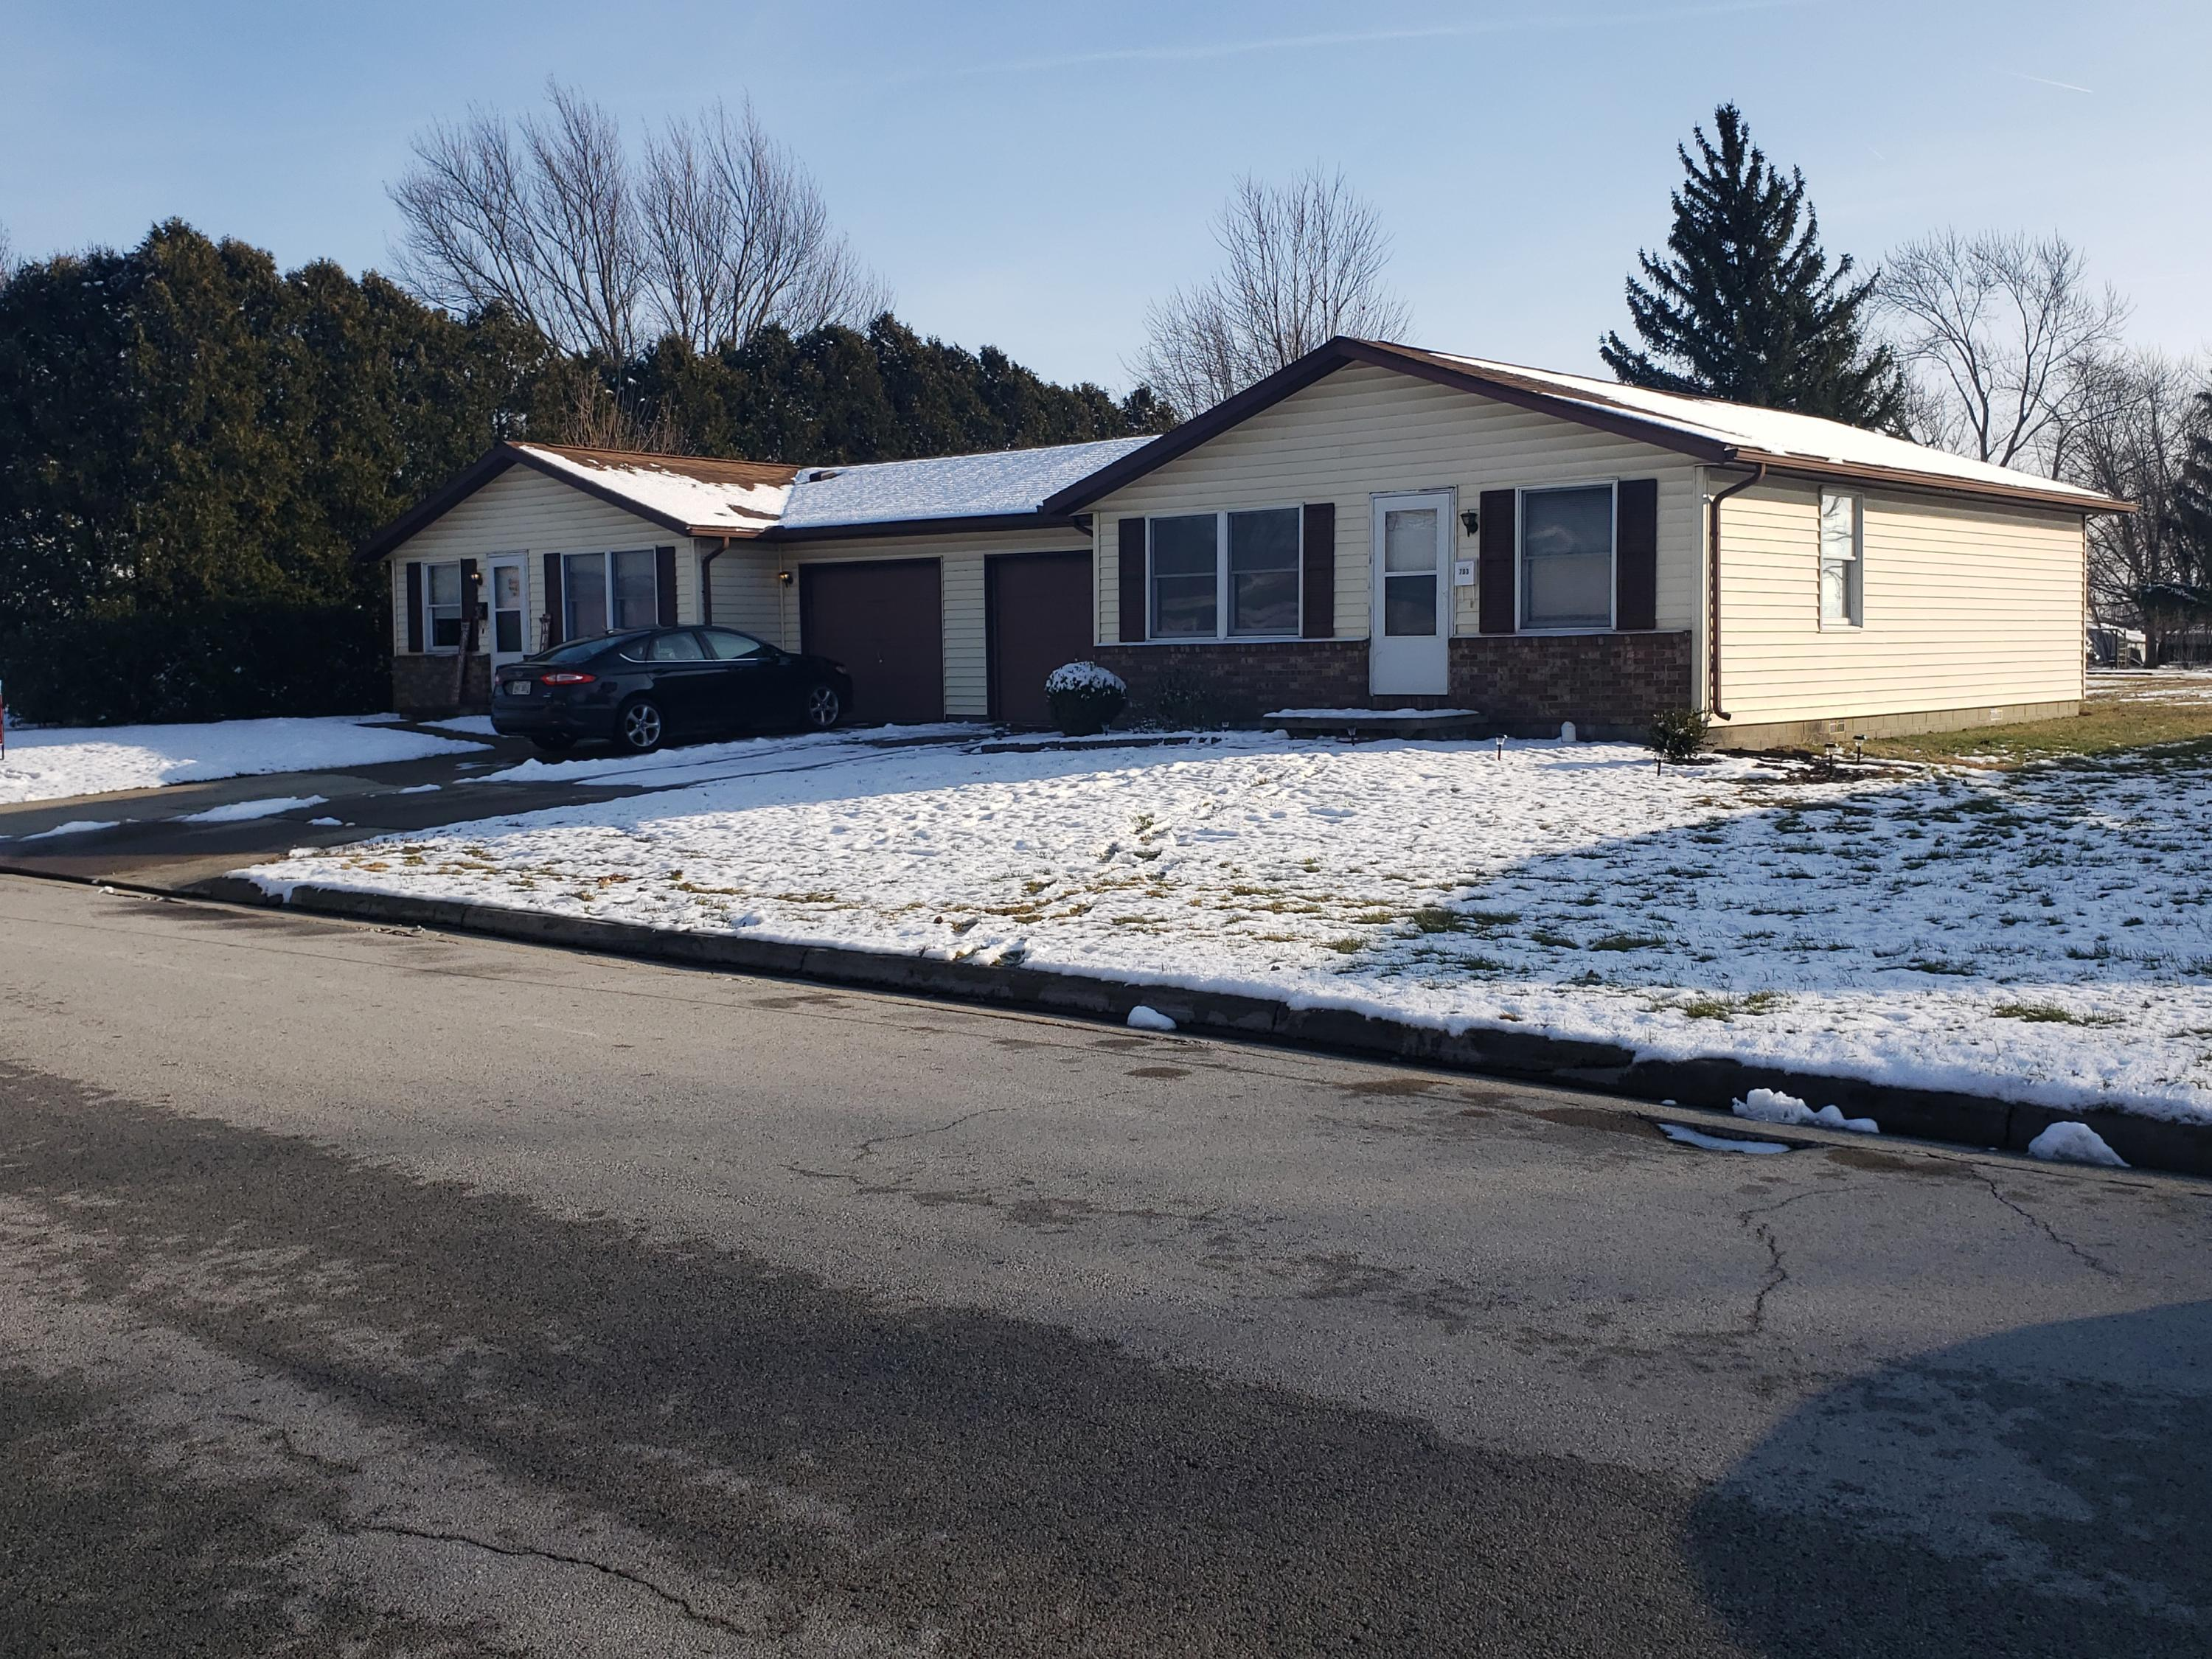 703 W Plum Street Property Photo - Wapakoneta, OH real estate listing